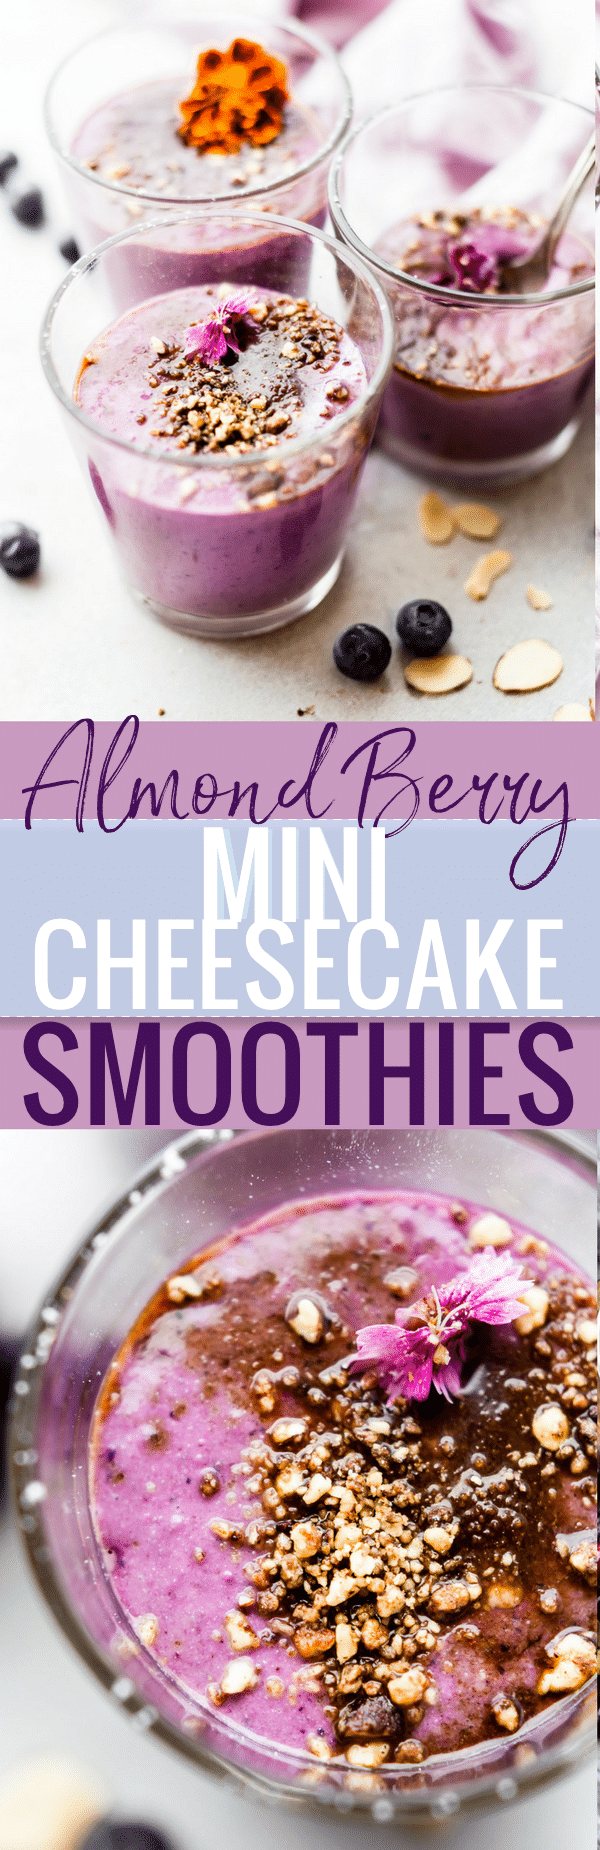 Berry Mini Cheesecake Smoothies packed with protein, wholesome ingredients, & vegan option. No protein powder needed. A tasty breakfast or healthy dessert! www.cottercrunch.com